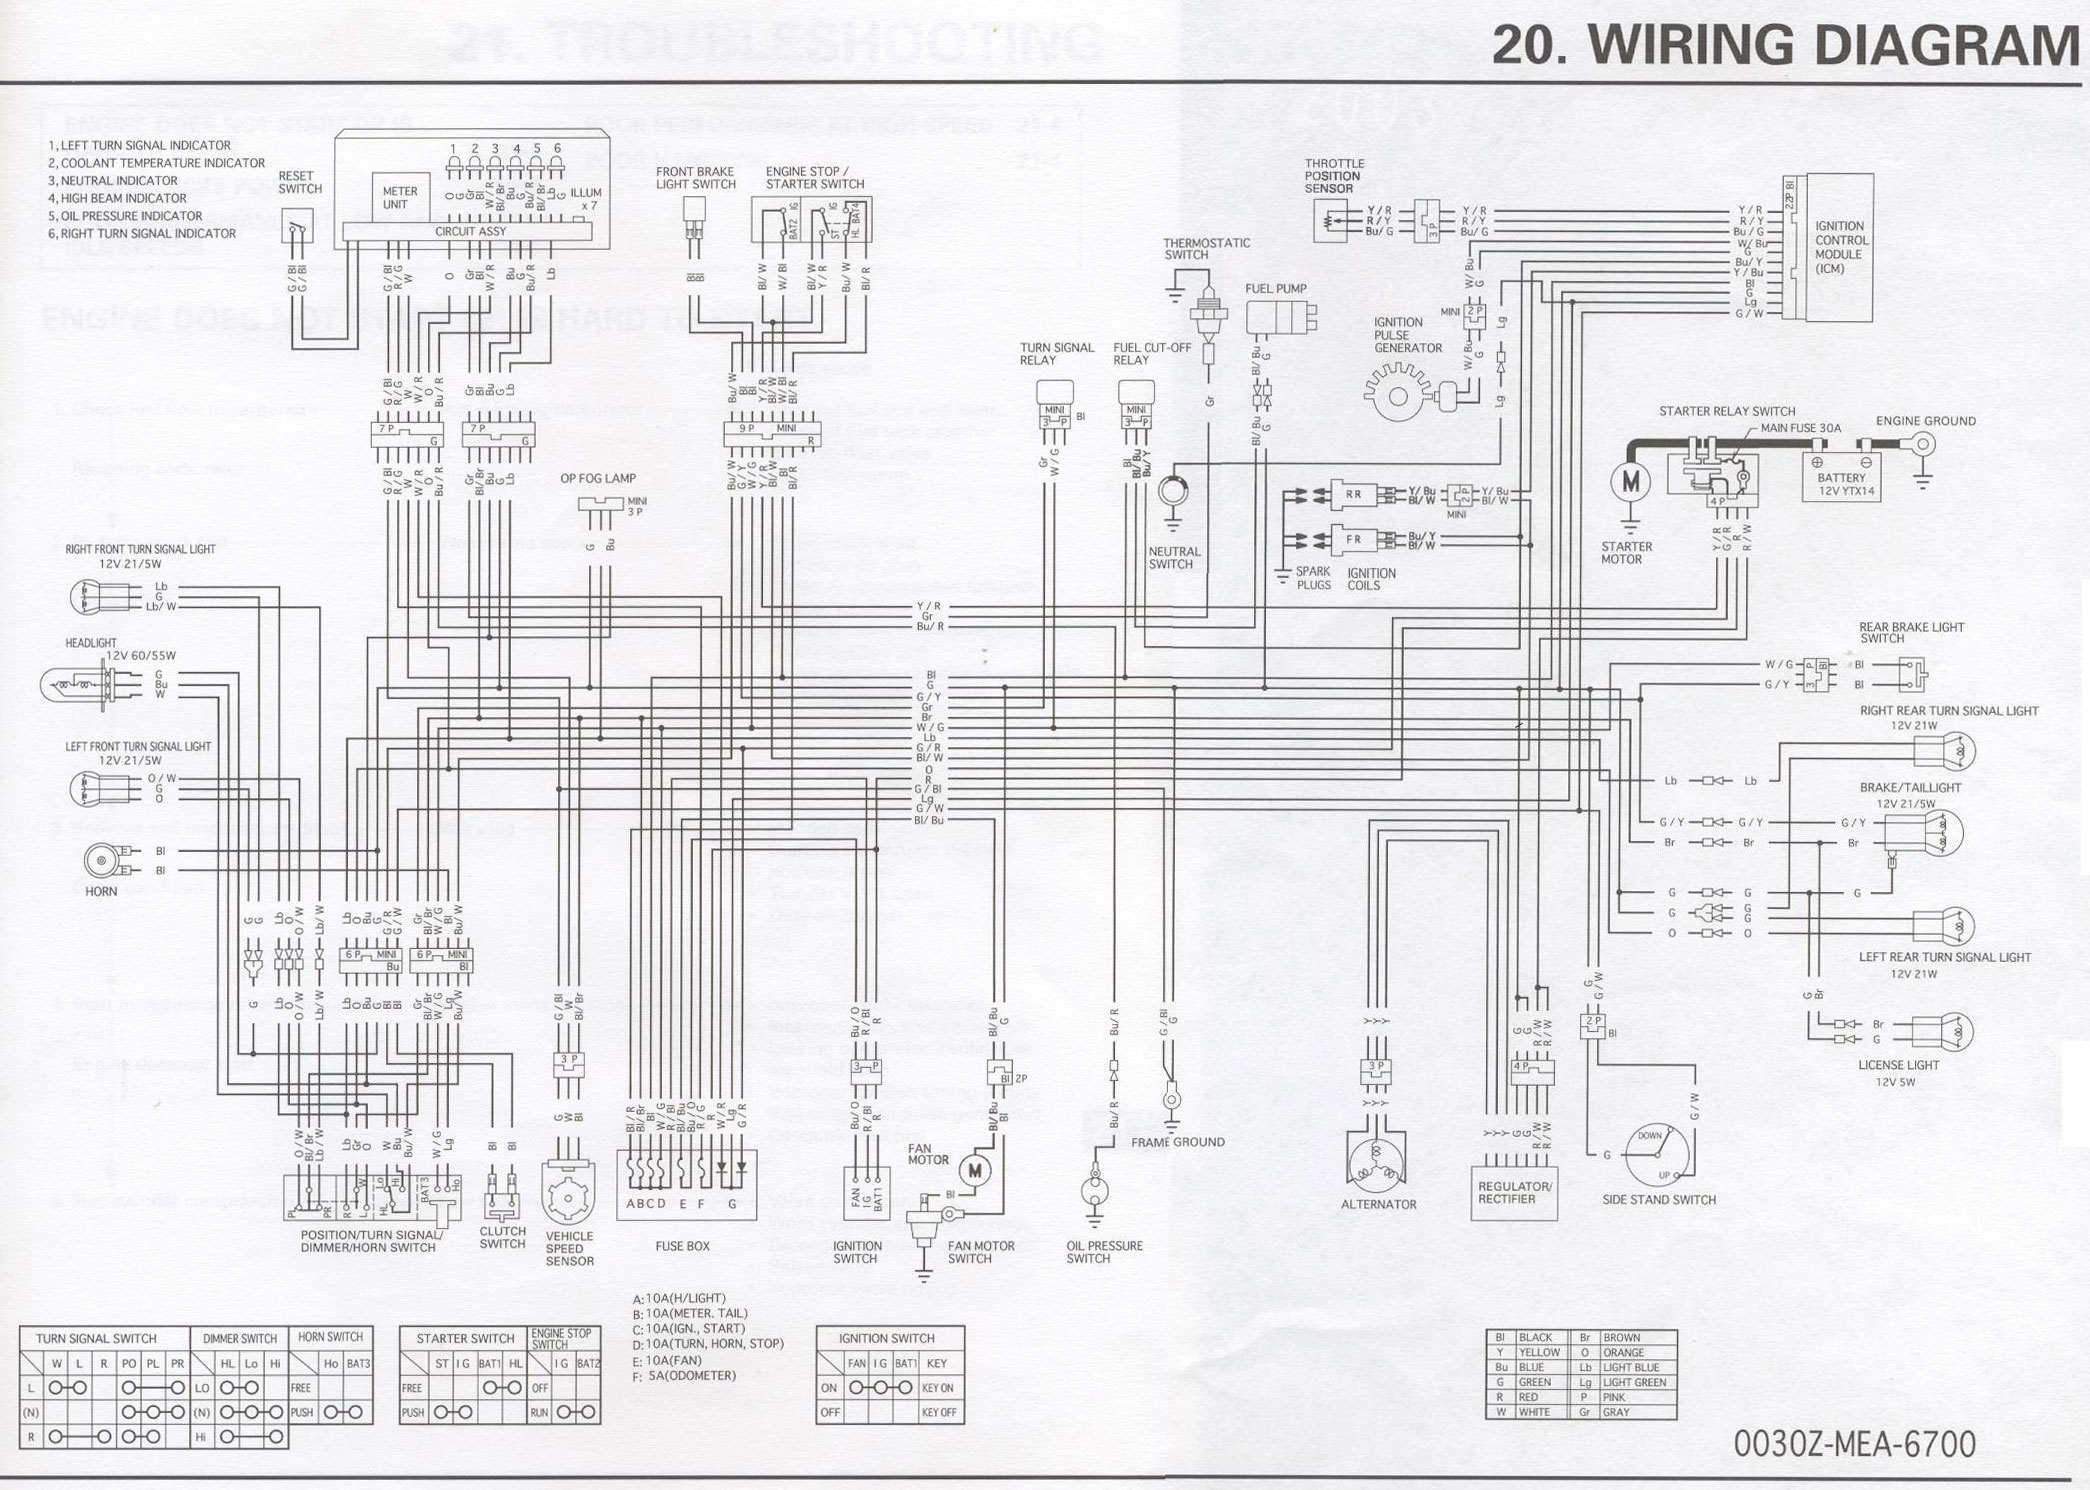 2003 honda vtx 1300 headlight wiring diagram relay symbol also 2007 get free image